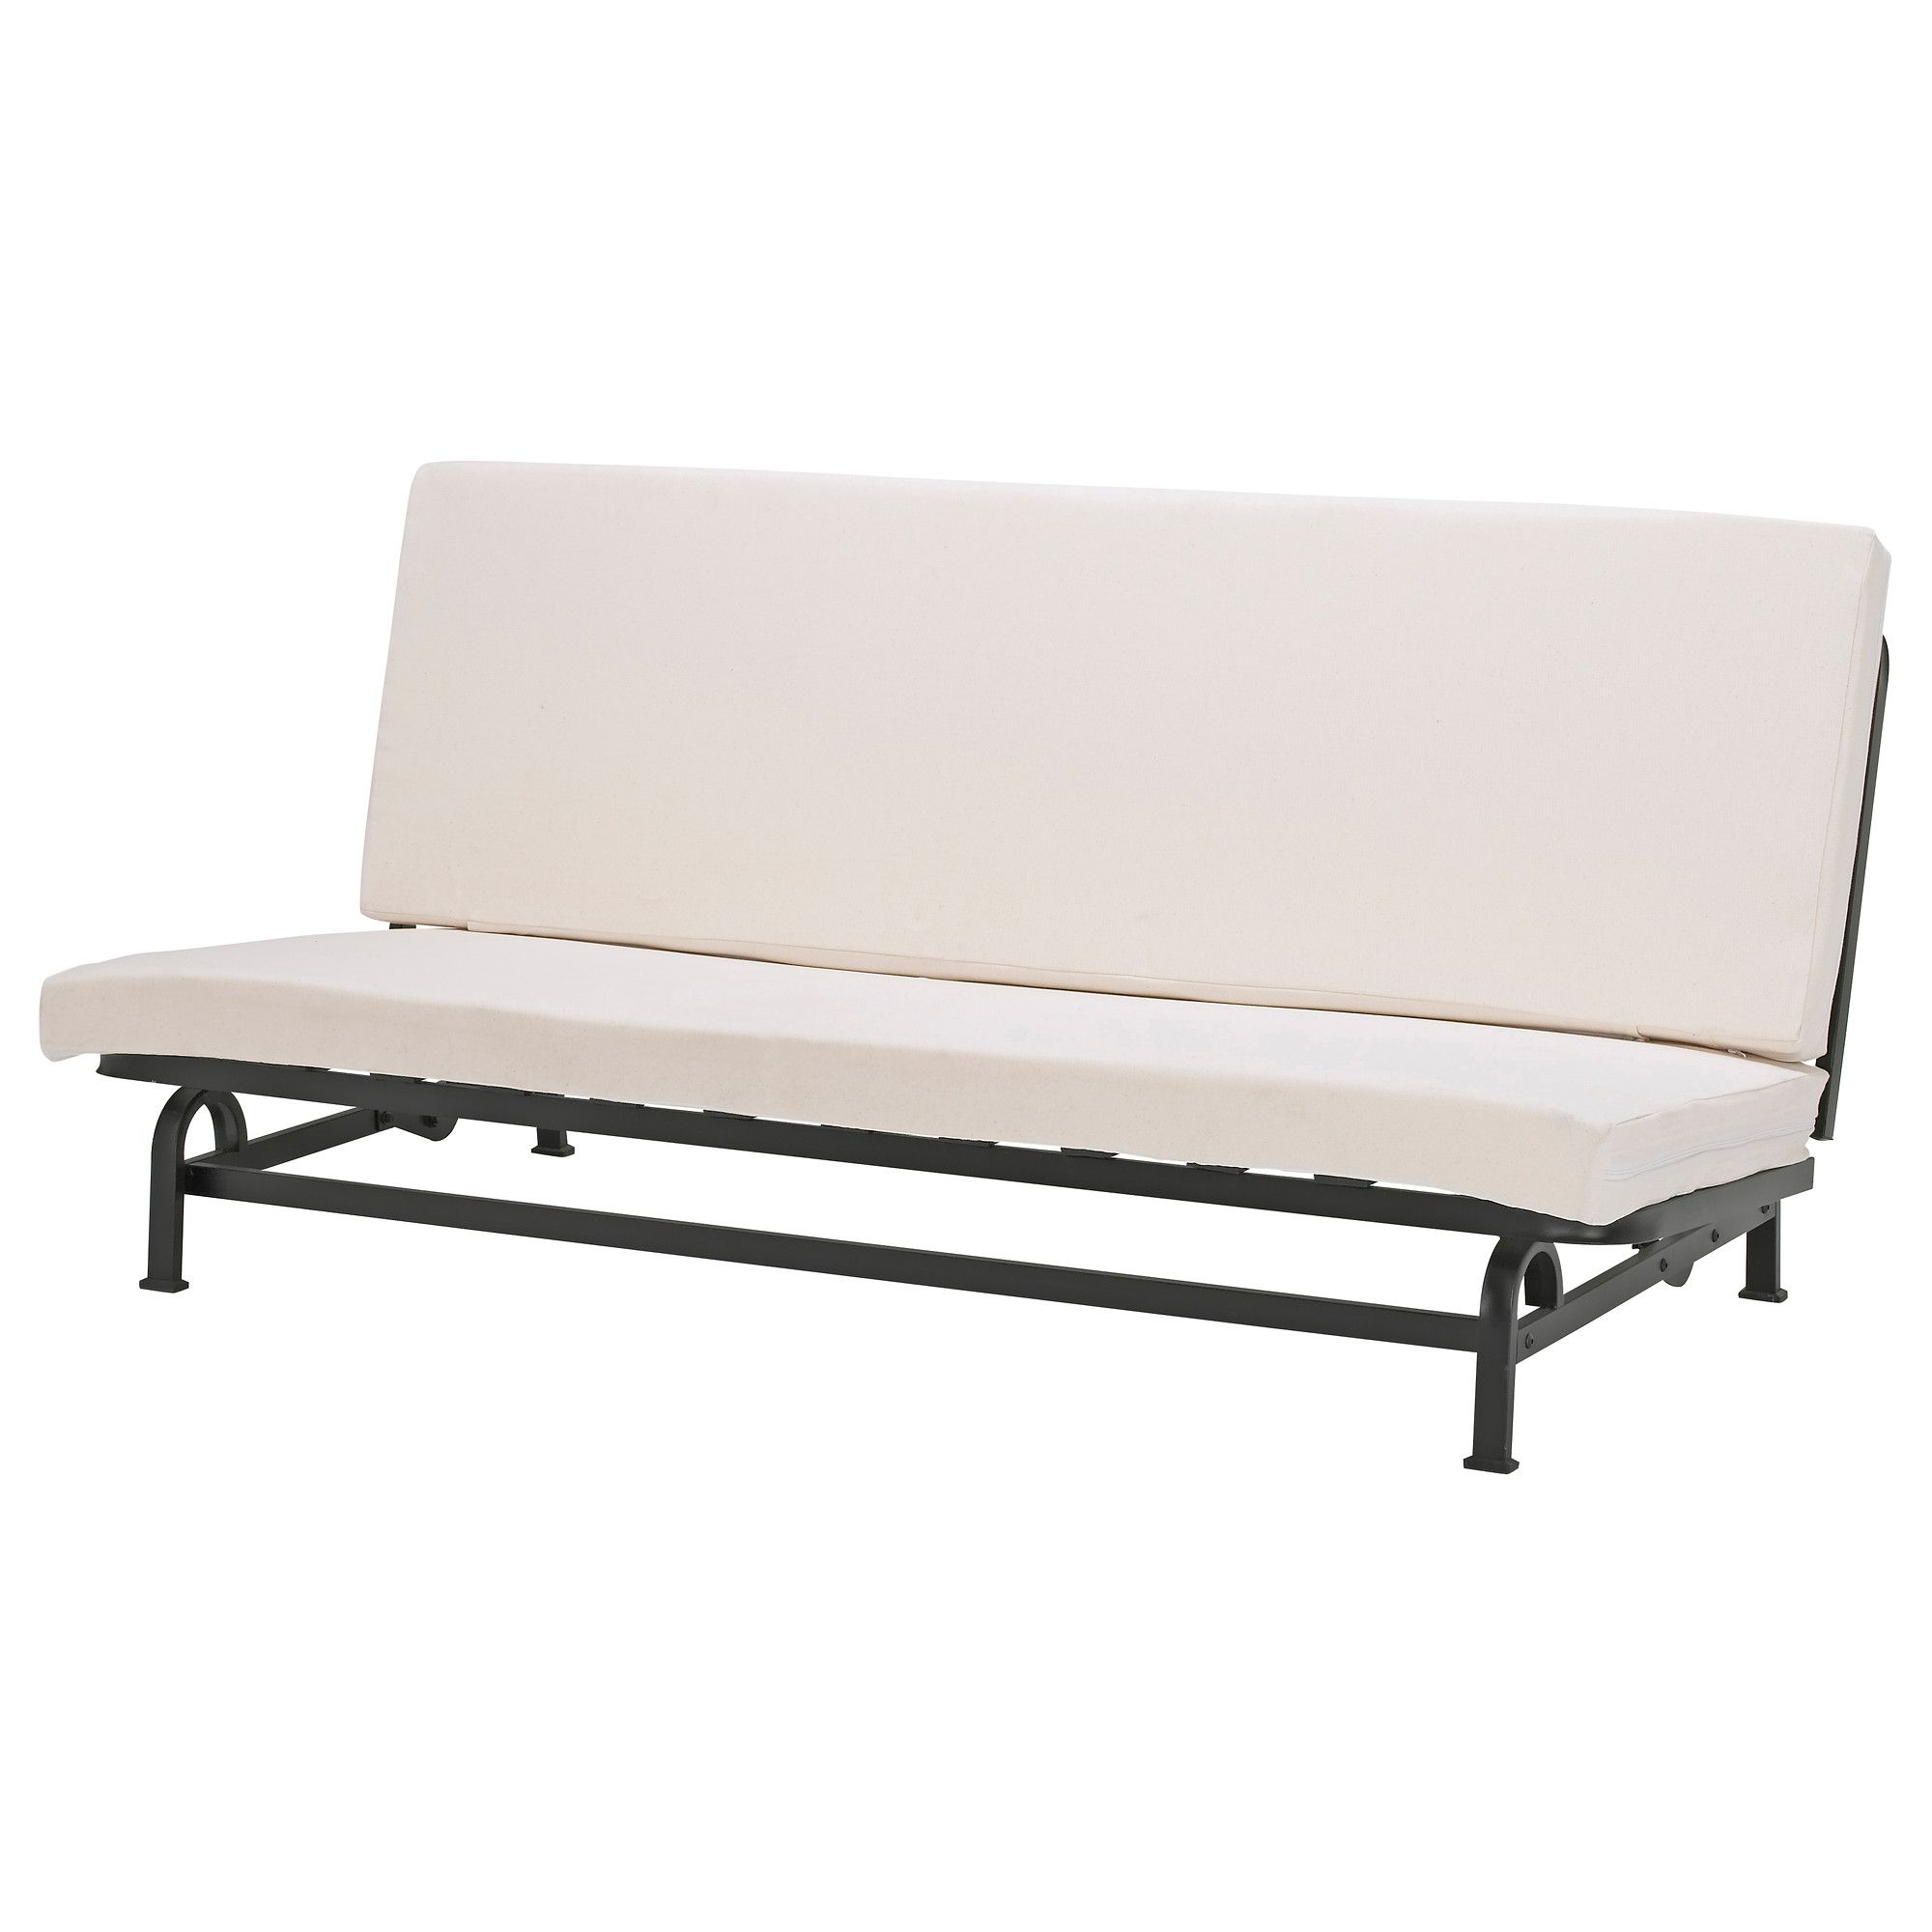 Ikea Sofa Bed Exarby Three Seat Sofa Bed Ikea Home Futon Sofa Bed Ikea